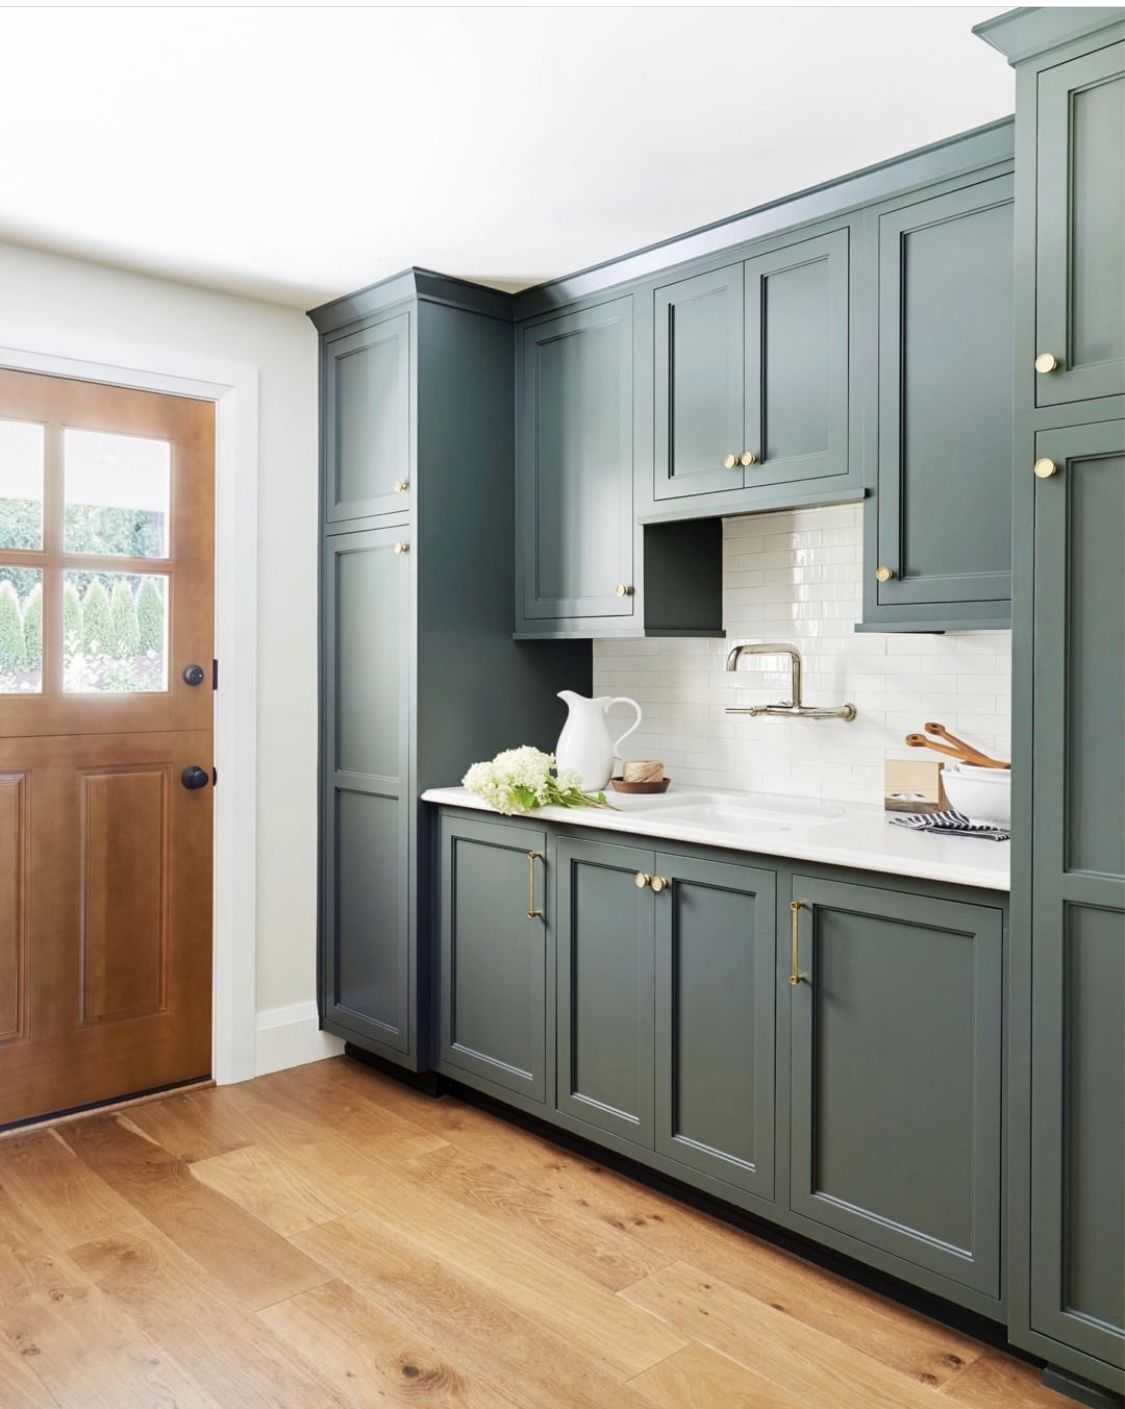 Pewter green by sherwin williams (With images) Green